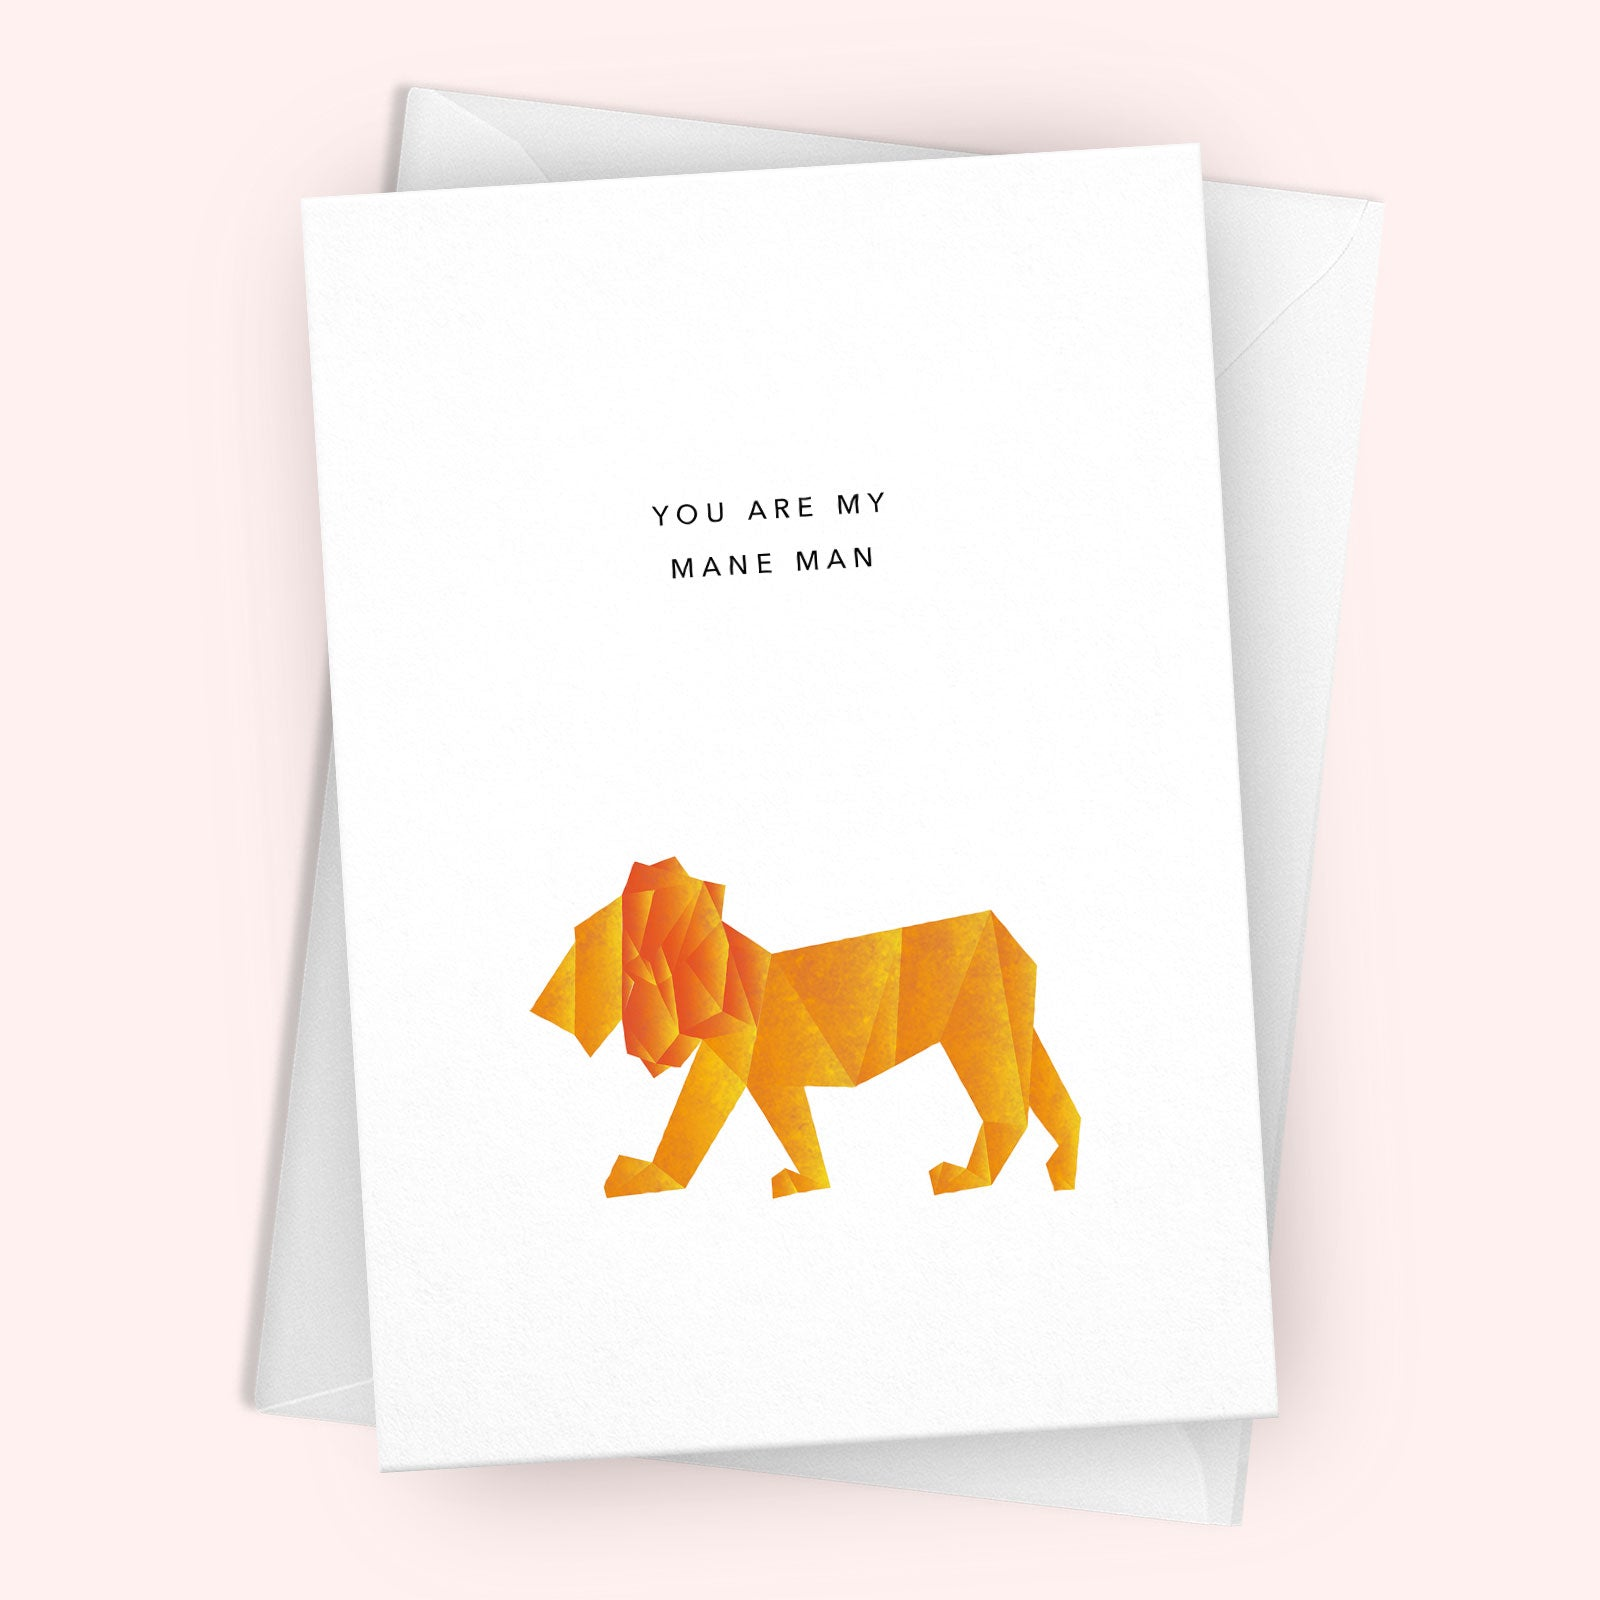 'You Are My Mane Man' Greetings Card